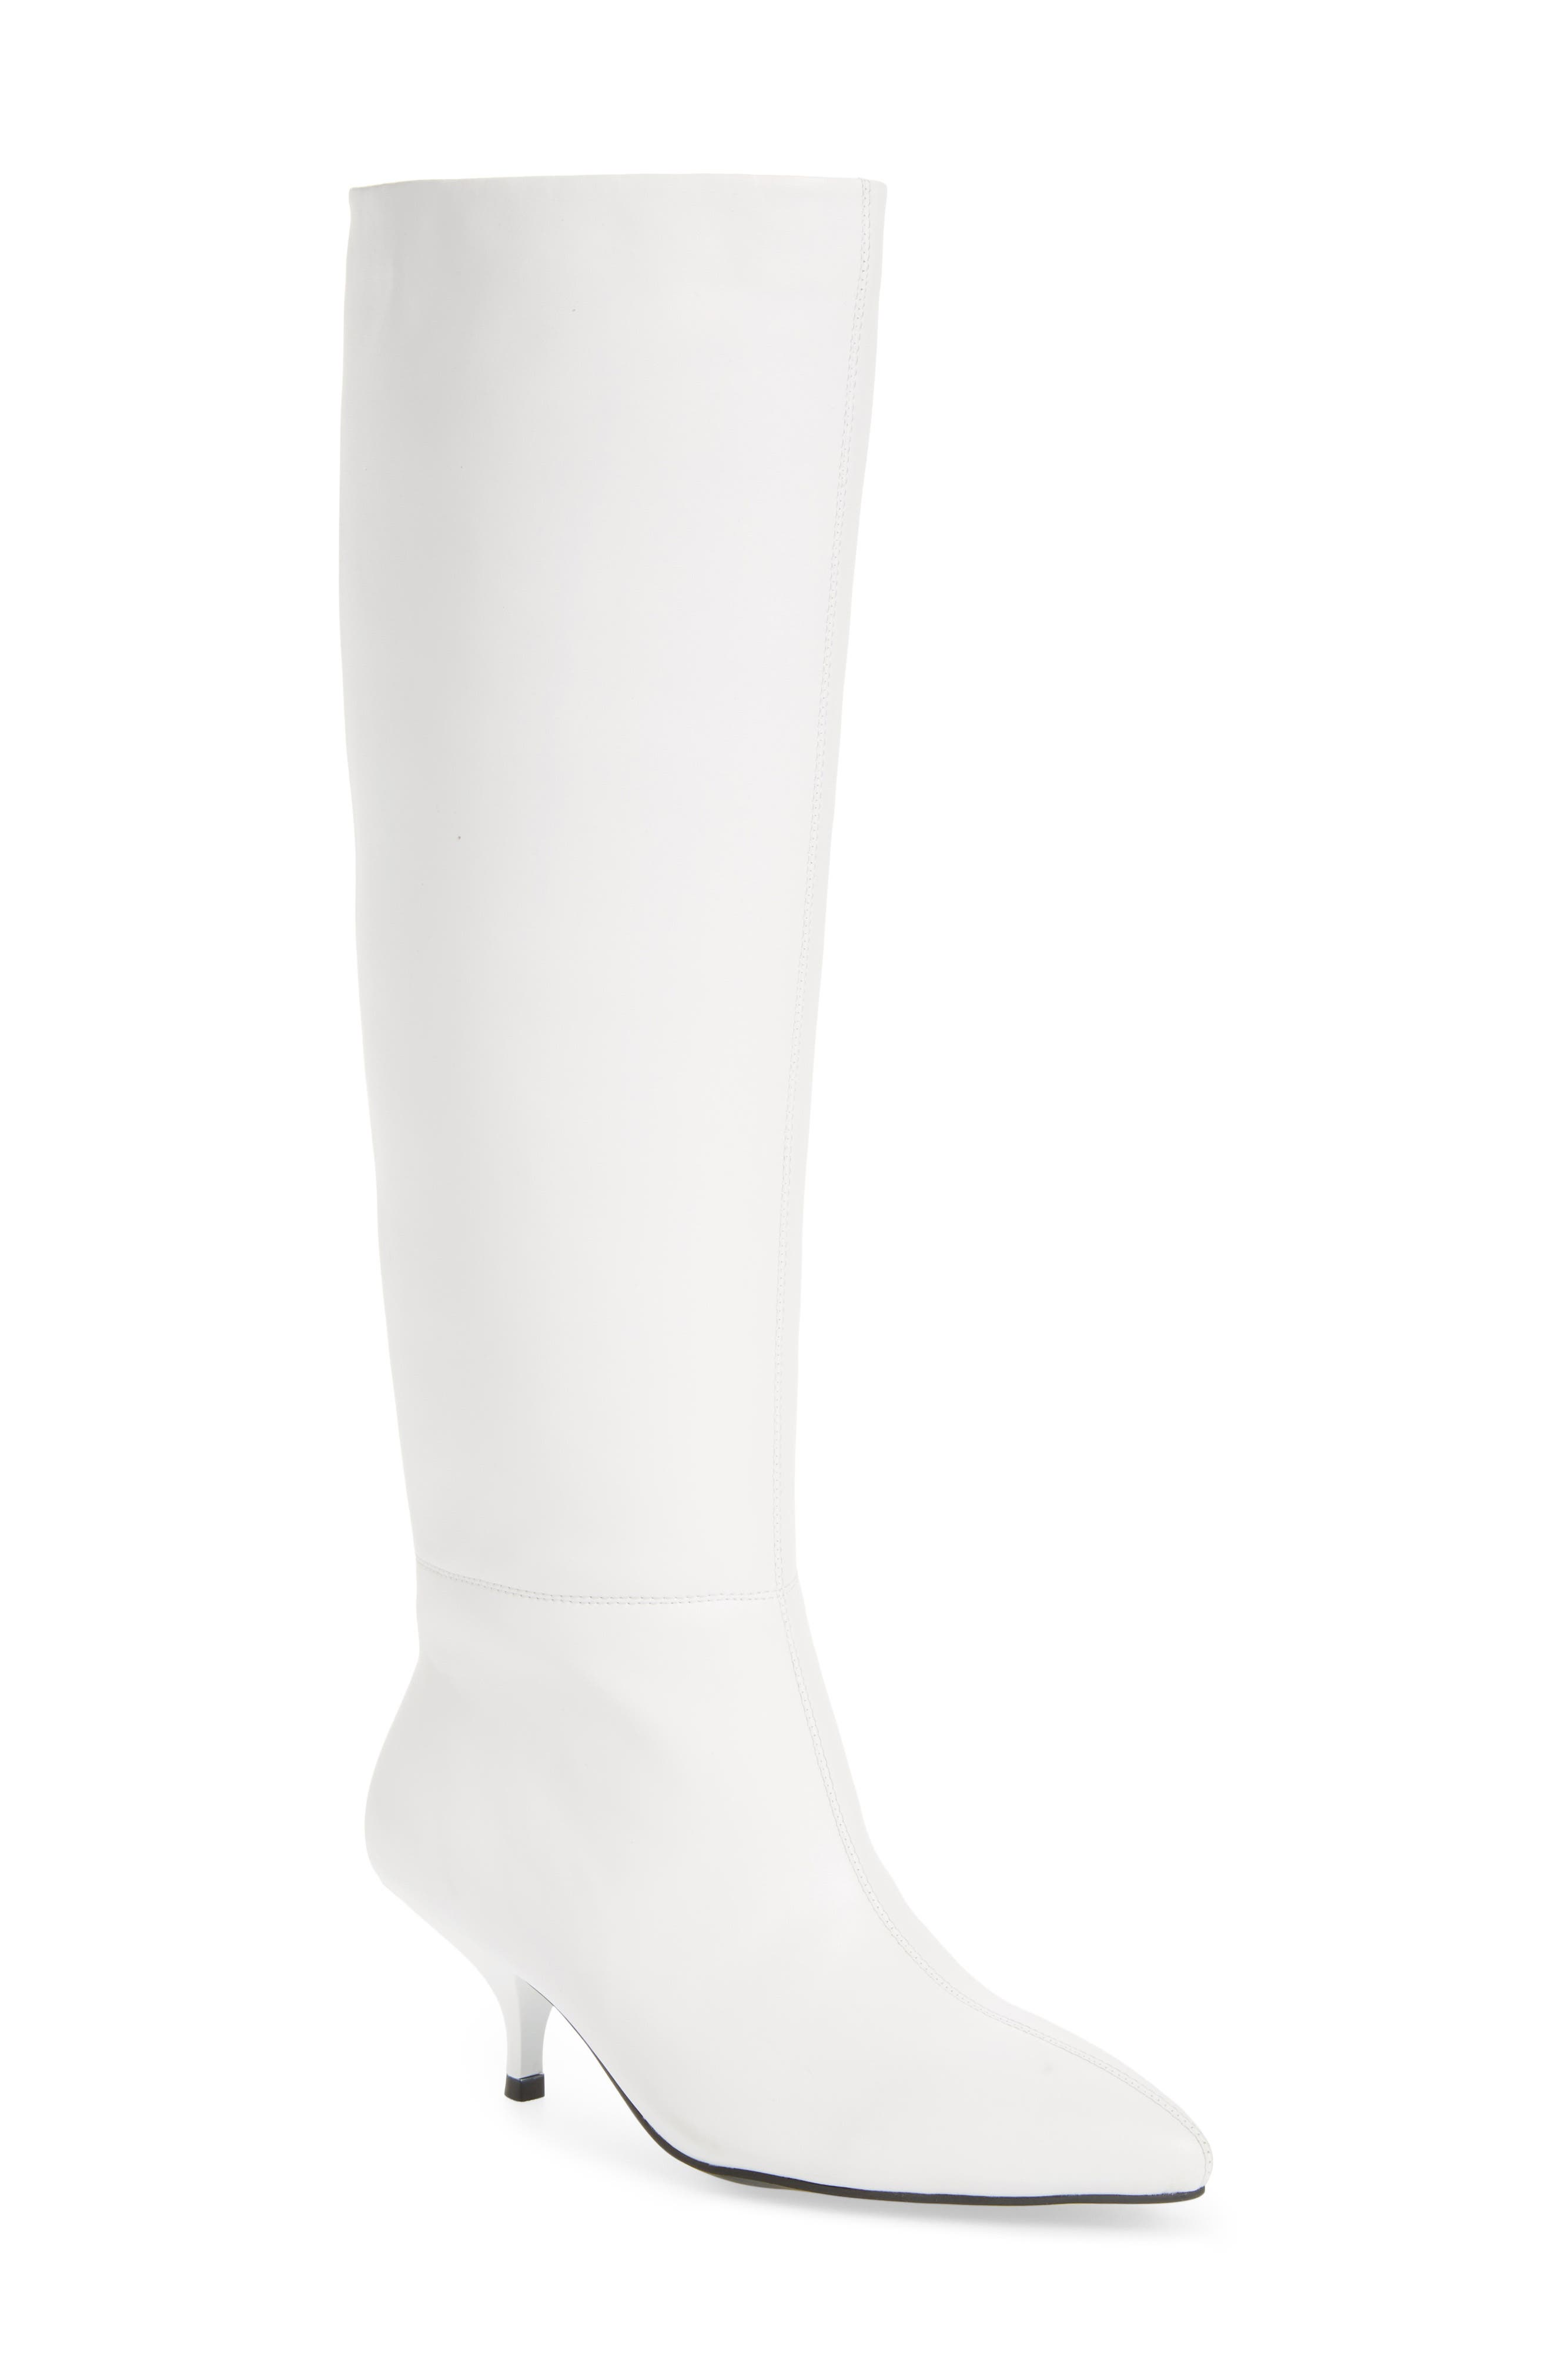 Germany Knee High Boot,                             Main thumbnail 1, color,                             WHITE